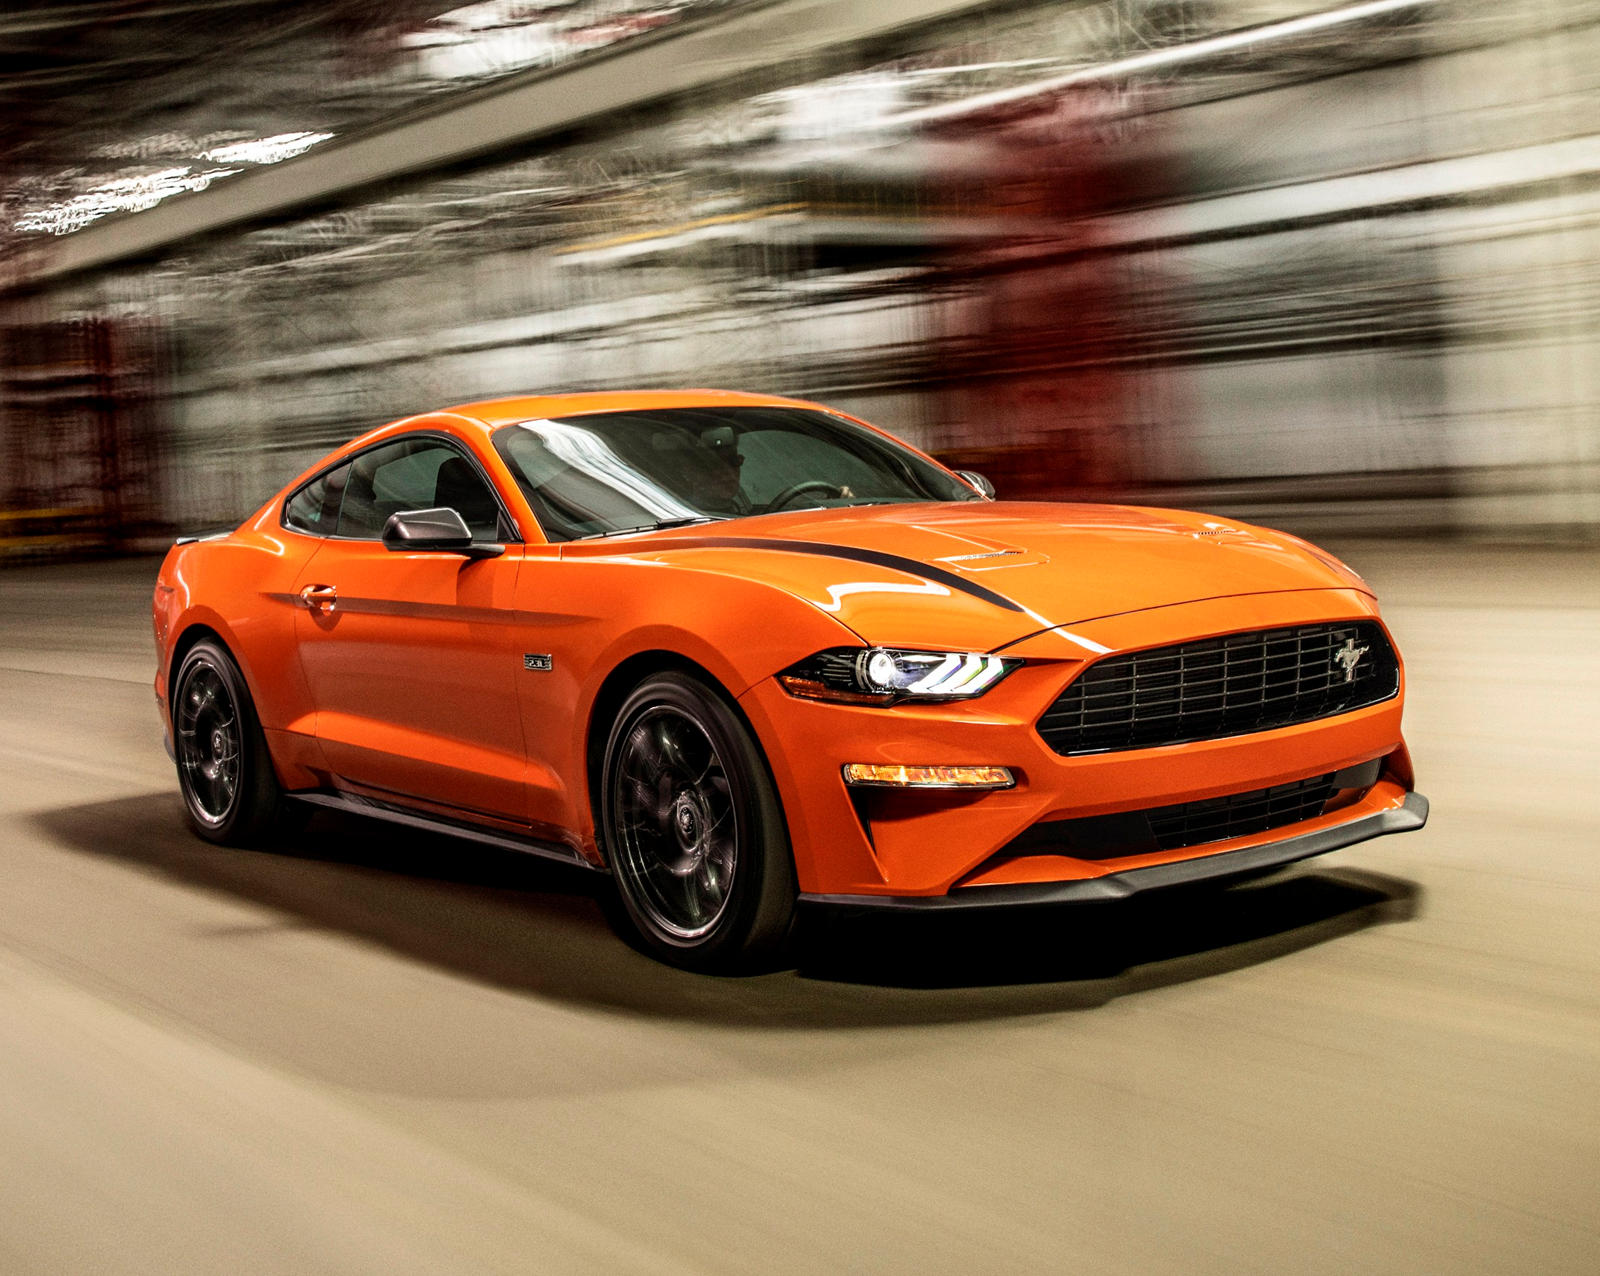 Ford Mustang SVO Name Ditched For Obvious Reason